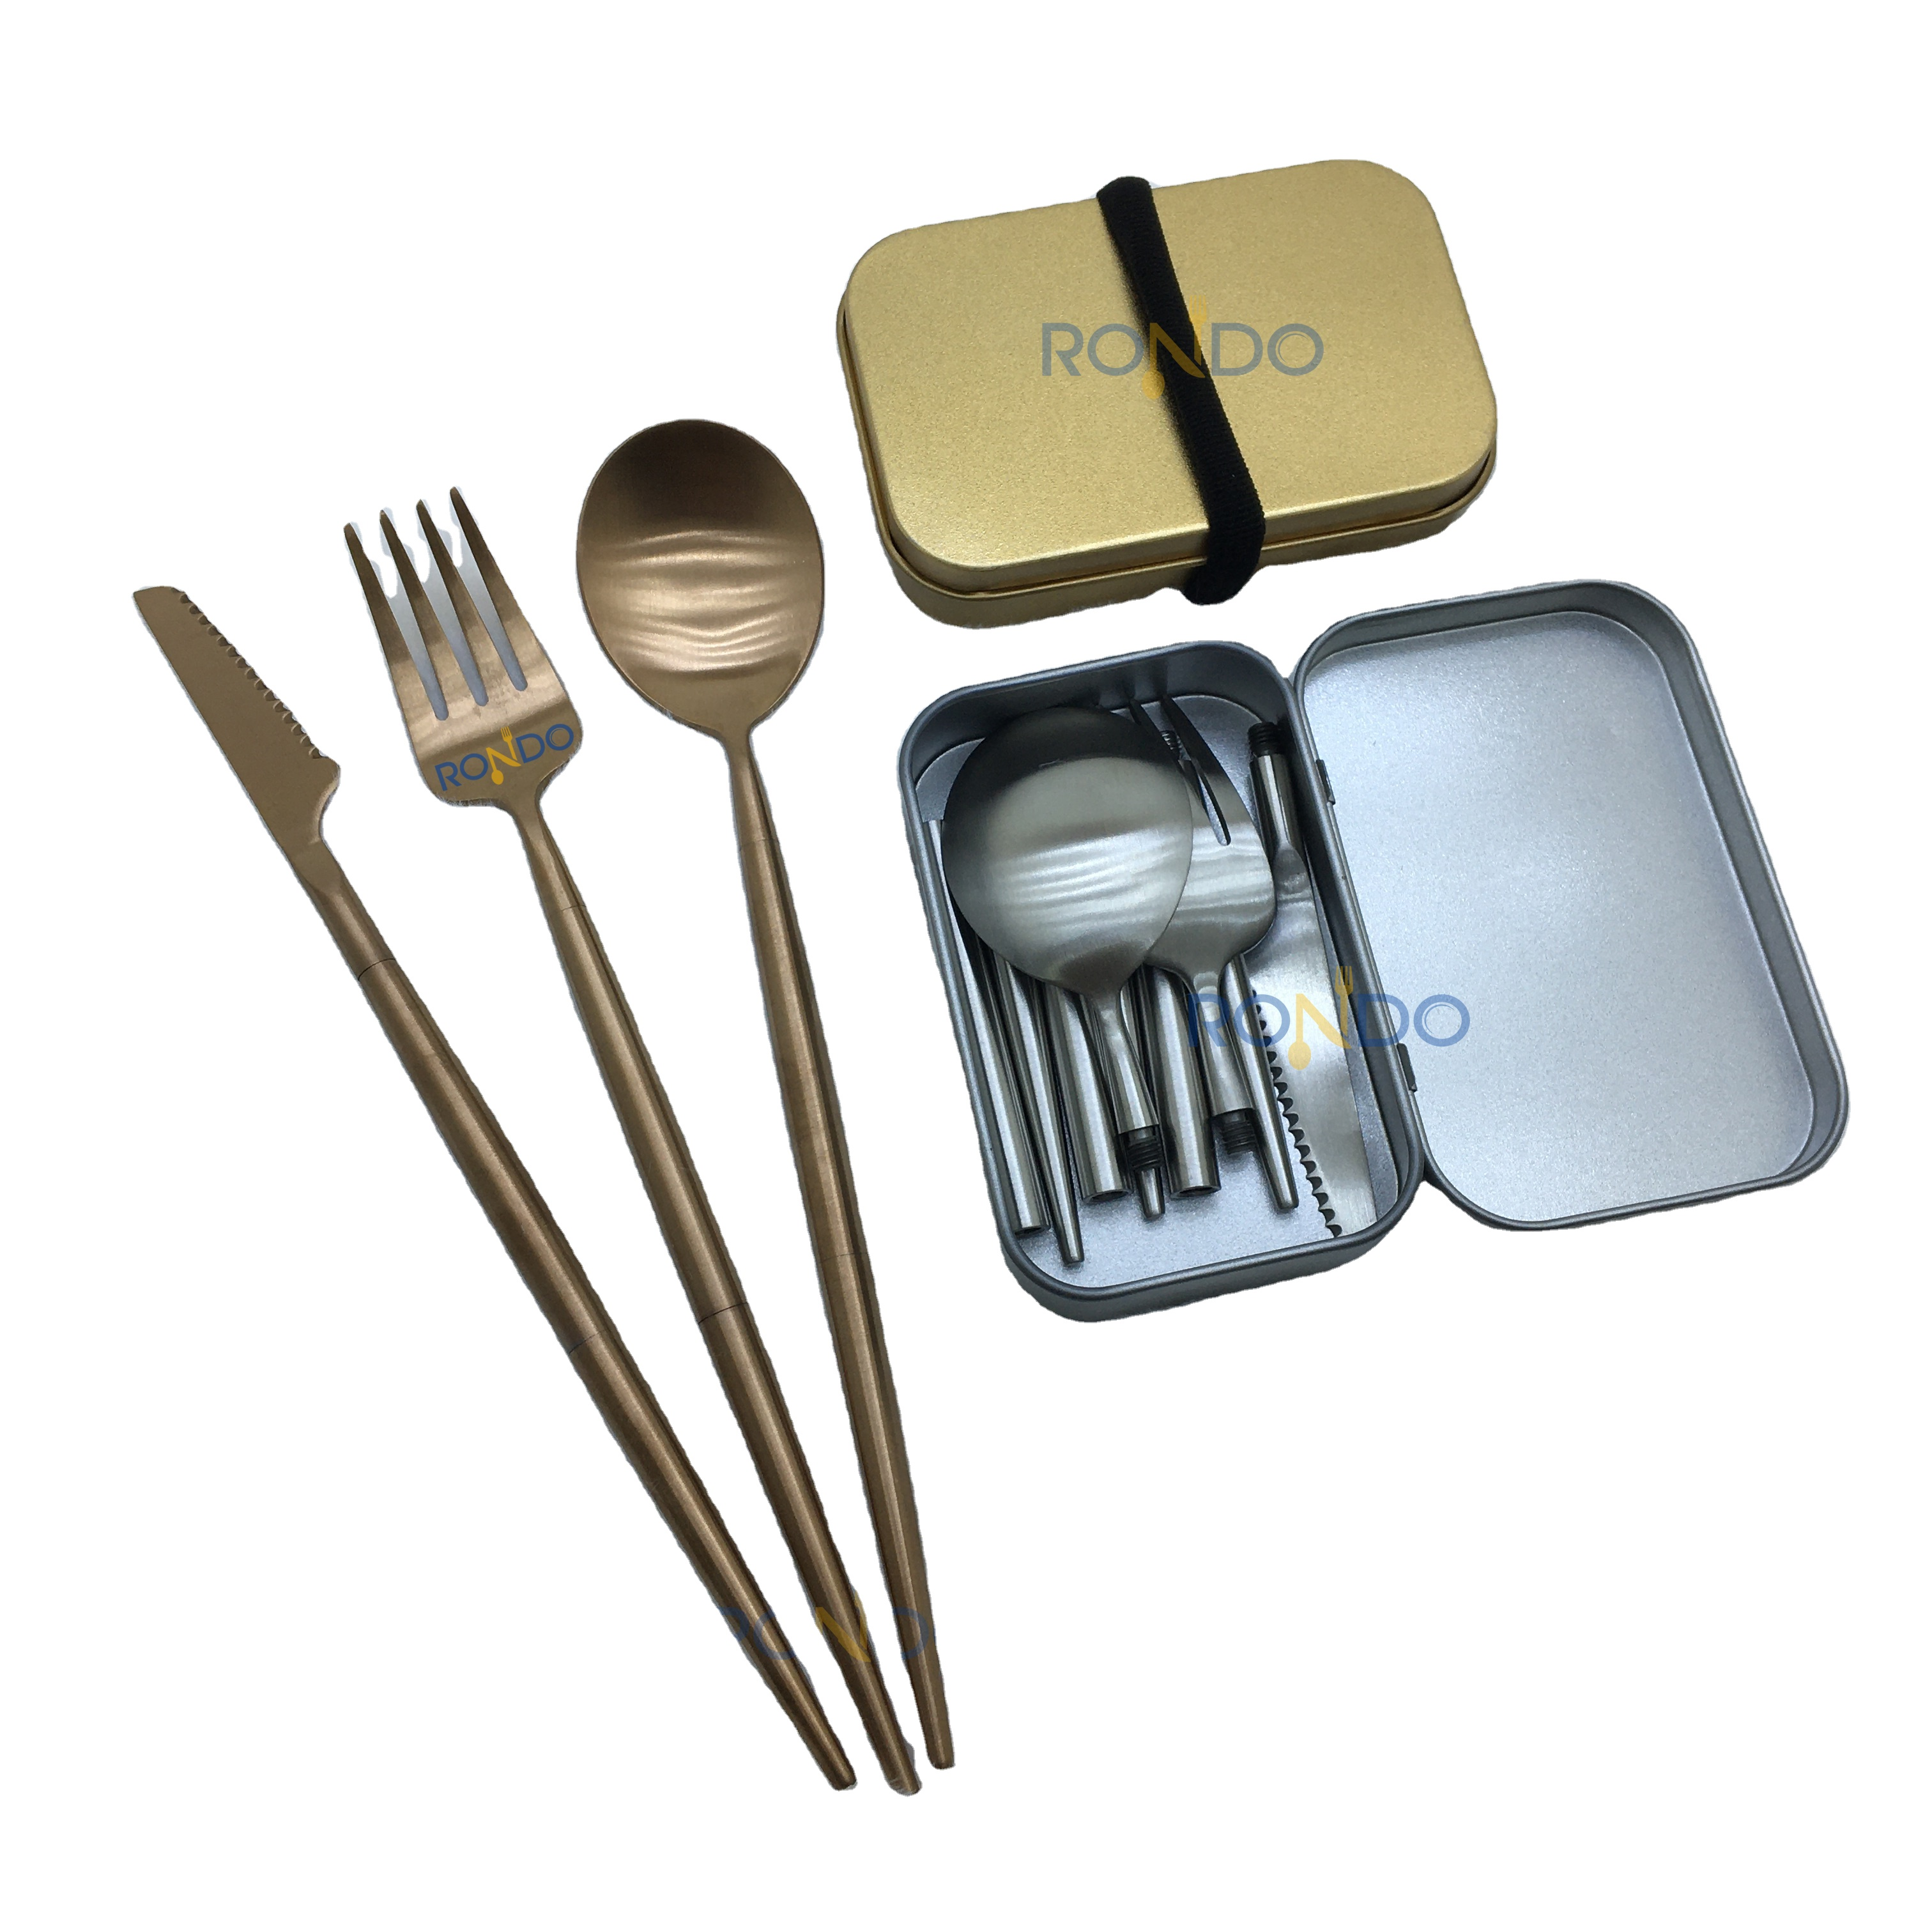 Amazon Top Seller Foldable Stainless Steel spoon fork <strong>set</strong> Flatware rose gold Portable Cutlery <strong>Set</strong>